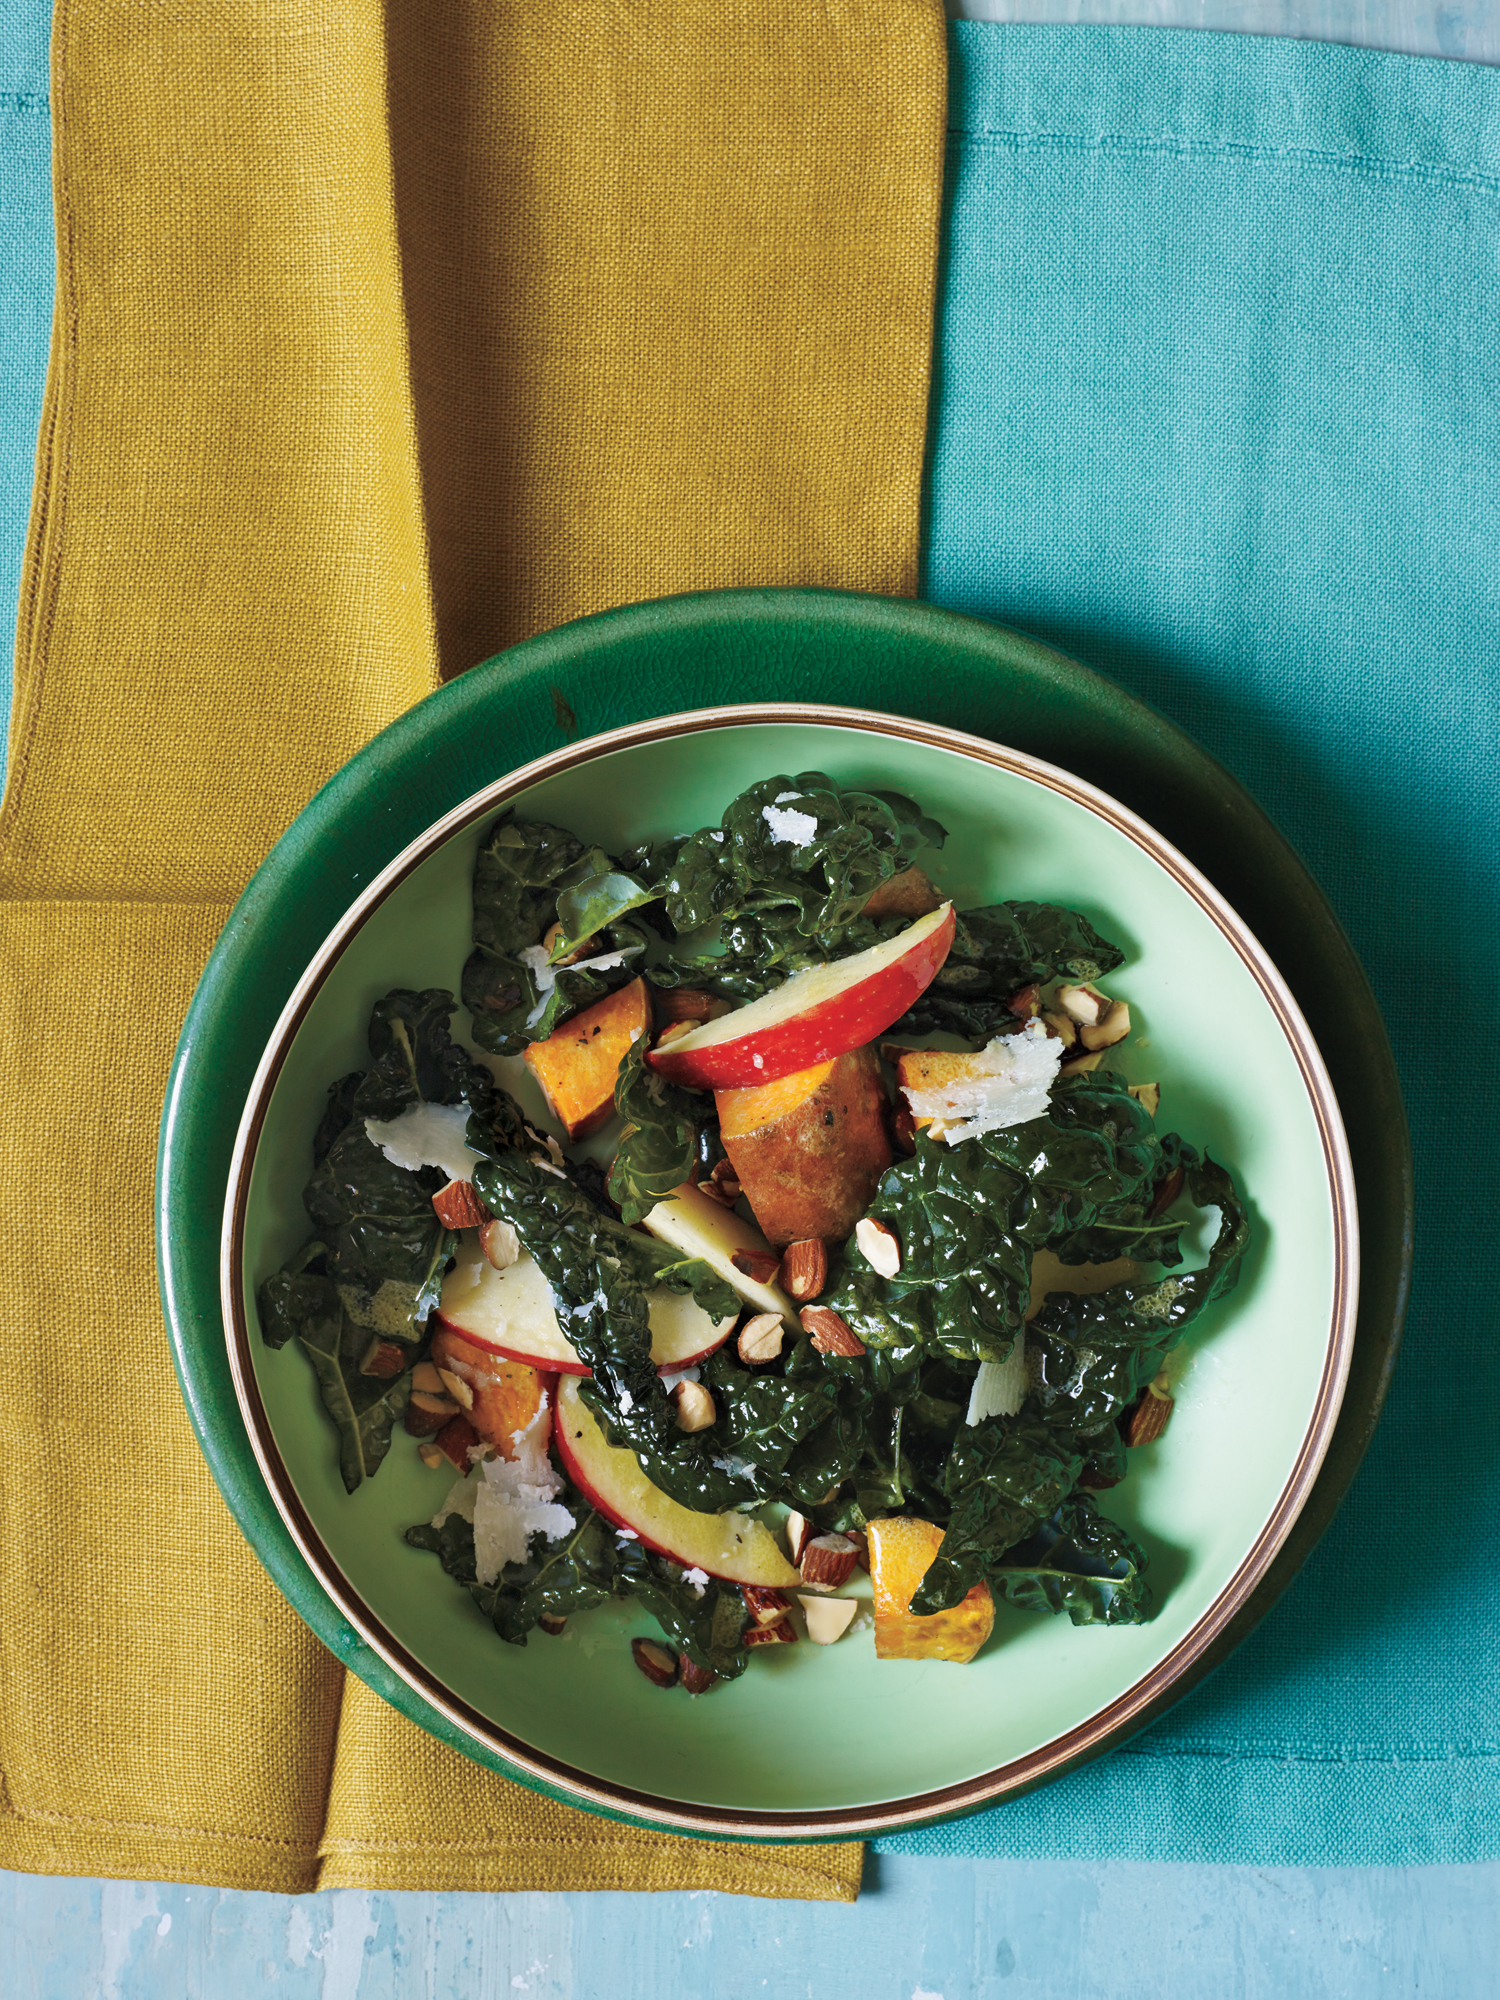 Mustardy Kale Salad with Roasted Sweet Potato and Apple